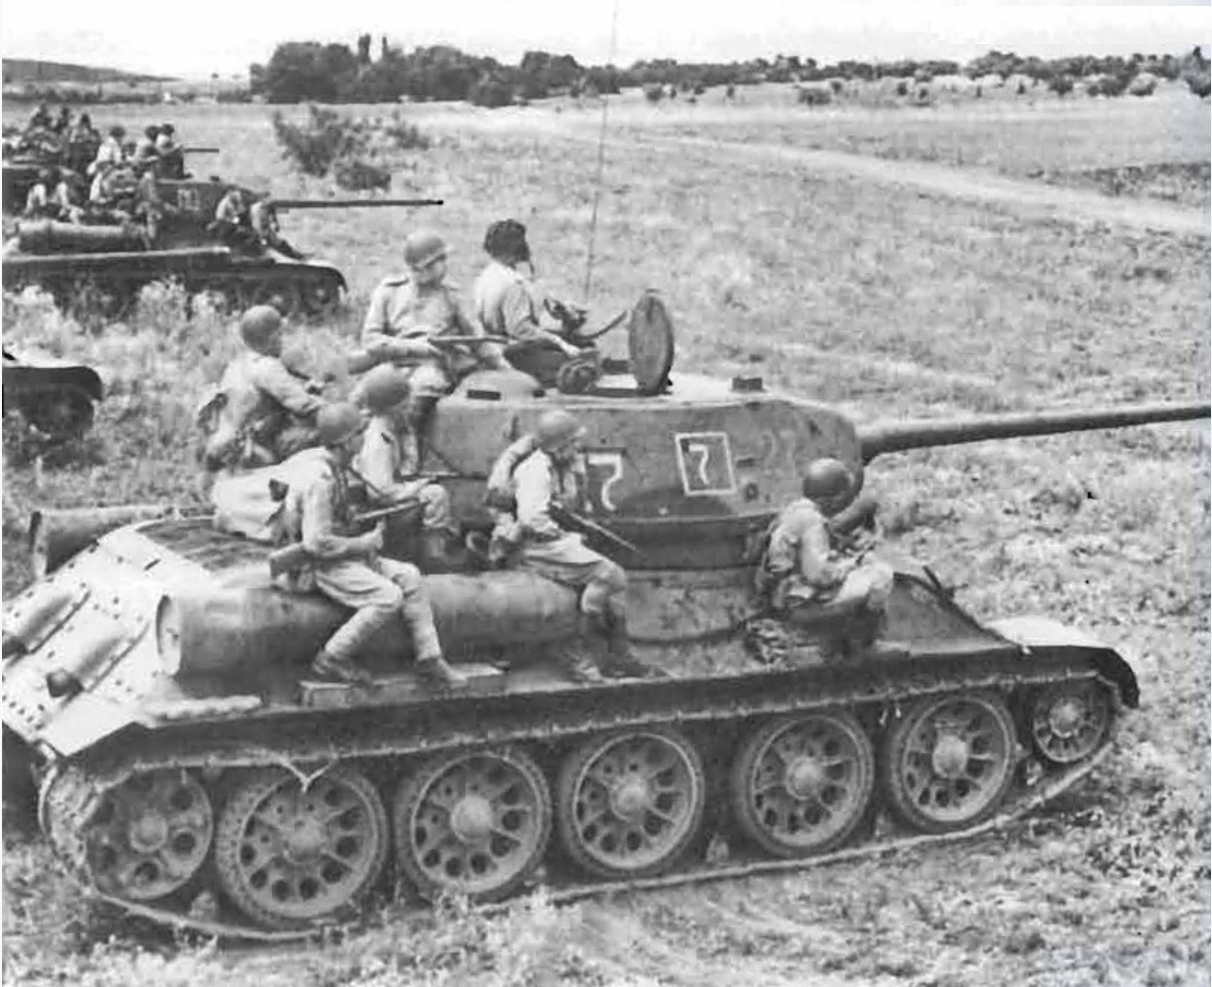 Classic Mech Corps operation in Rumania with 4th Guards Mech Corps in late 1944